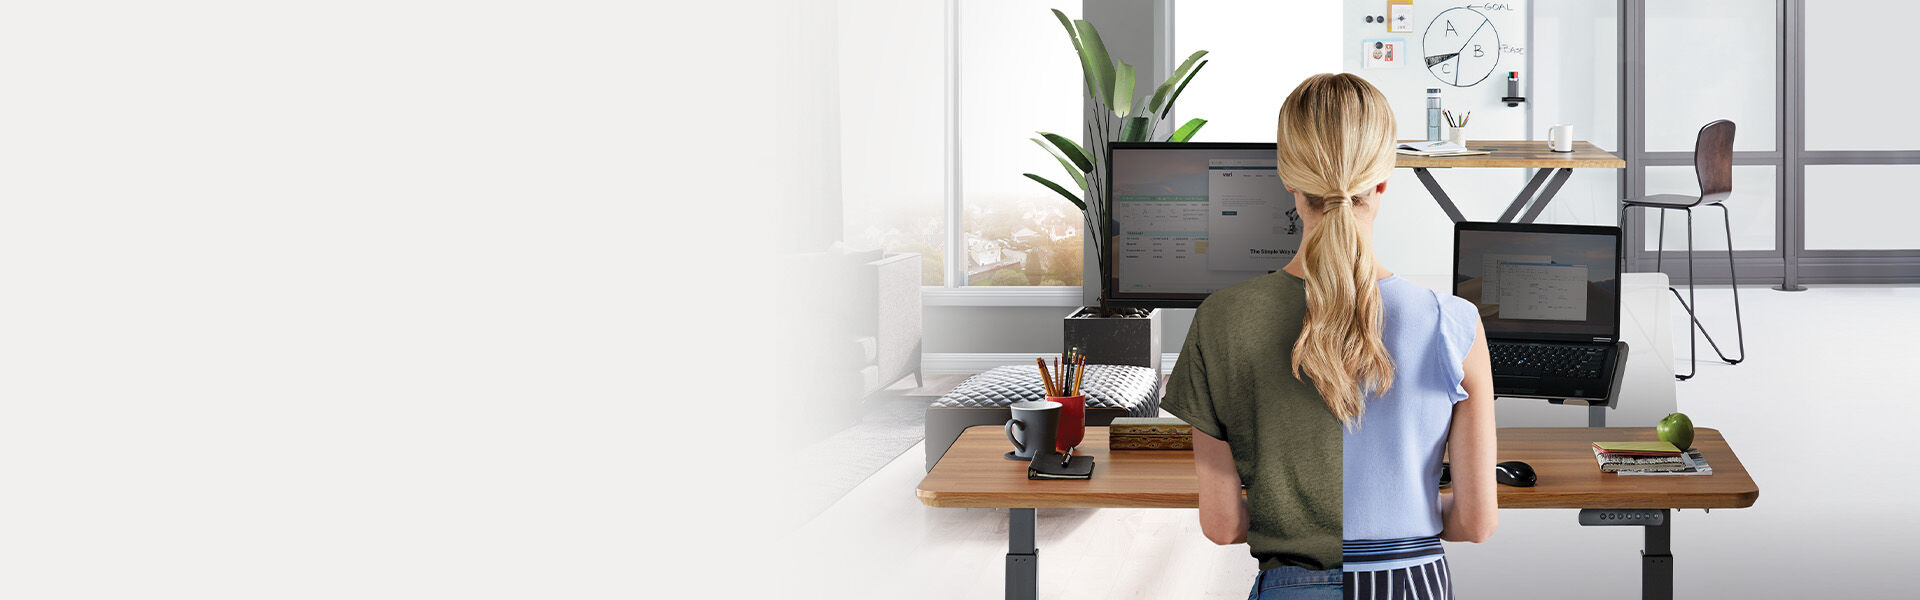 professional working at electric standing desk in a home and professional office